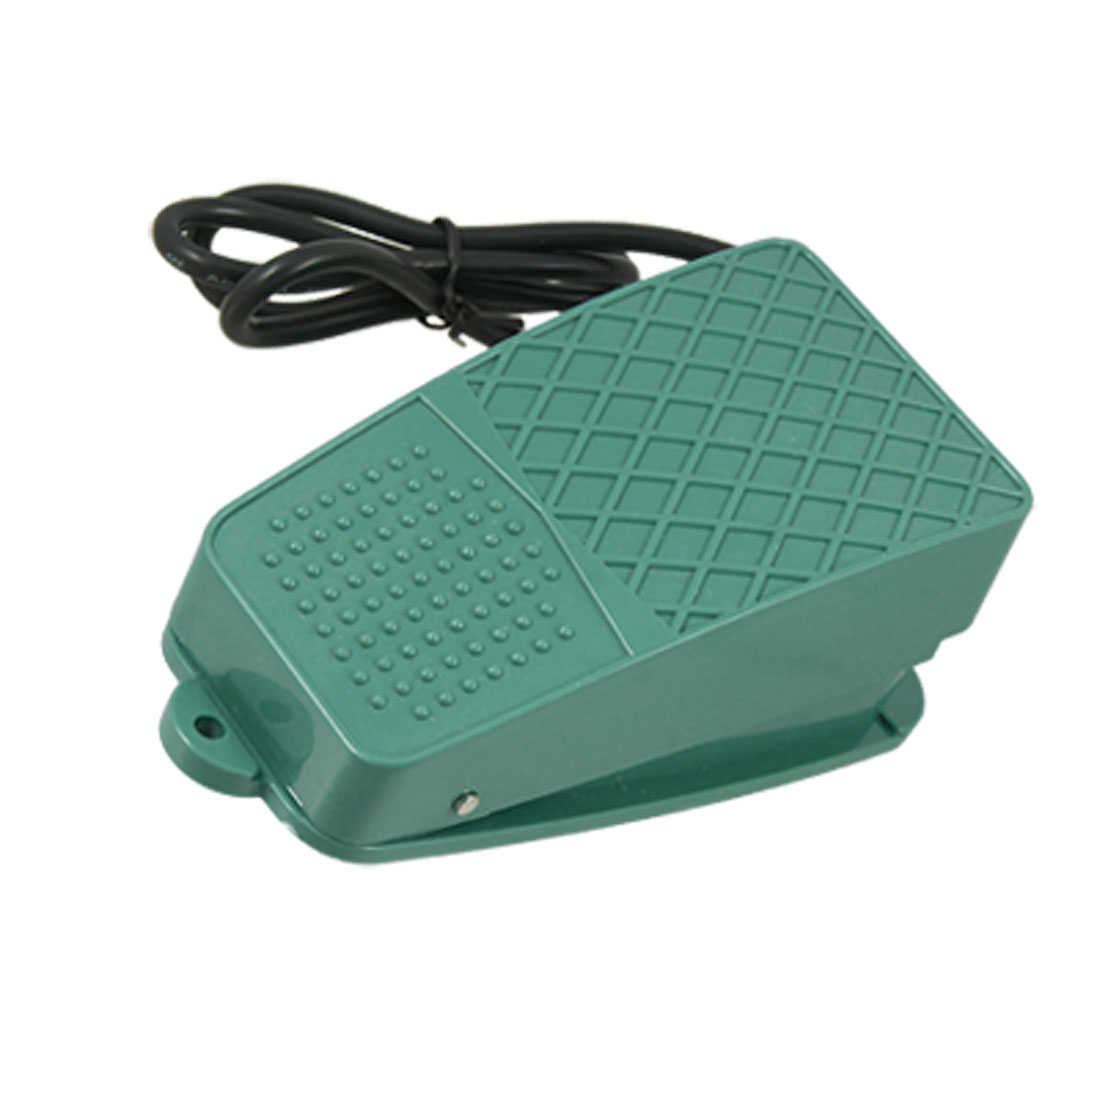 AC 250V 10A SPDT NO NC Nonslip Plastic Momentary Power Treadle Foot Pedal Switch Green